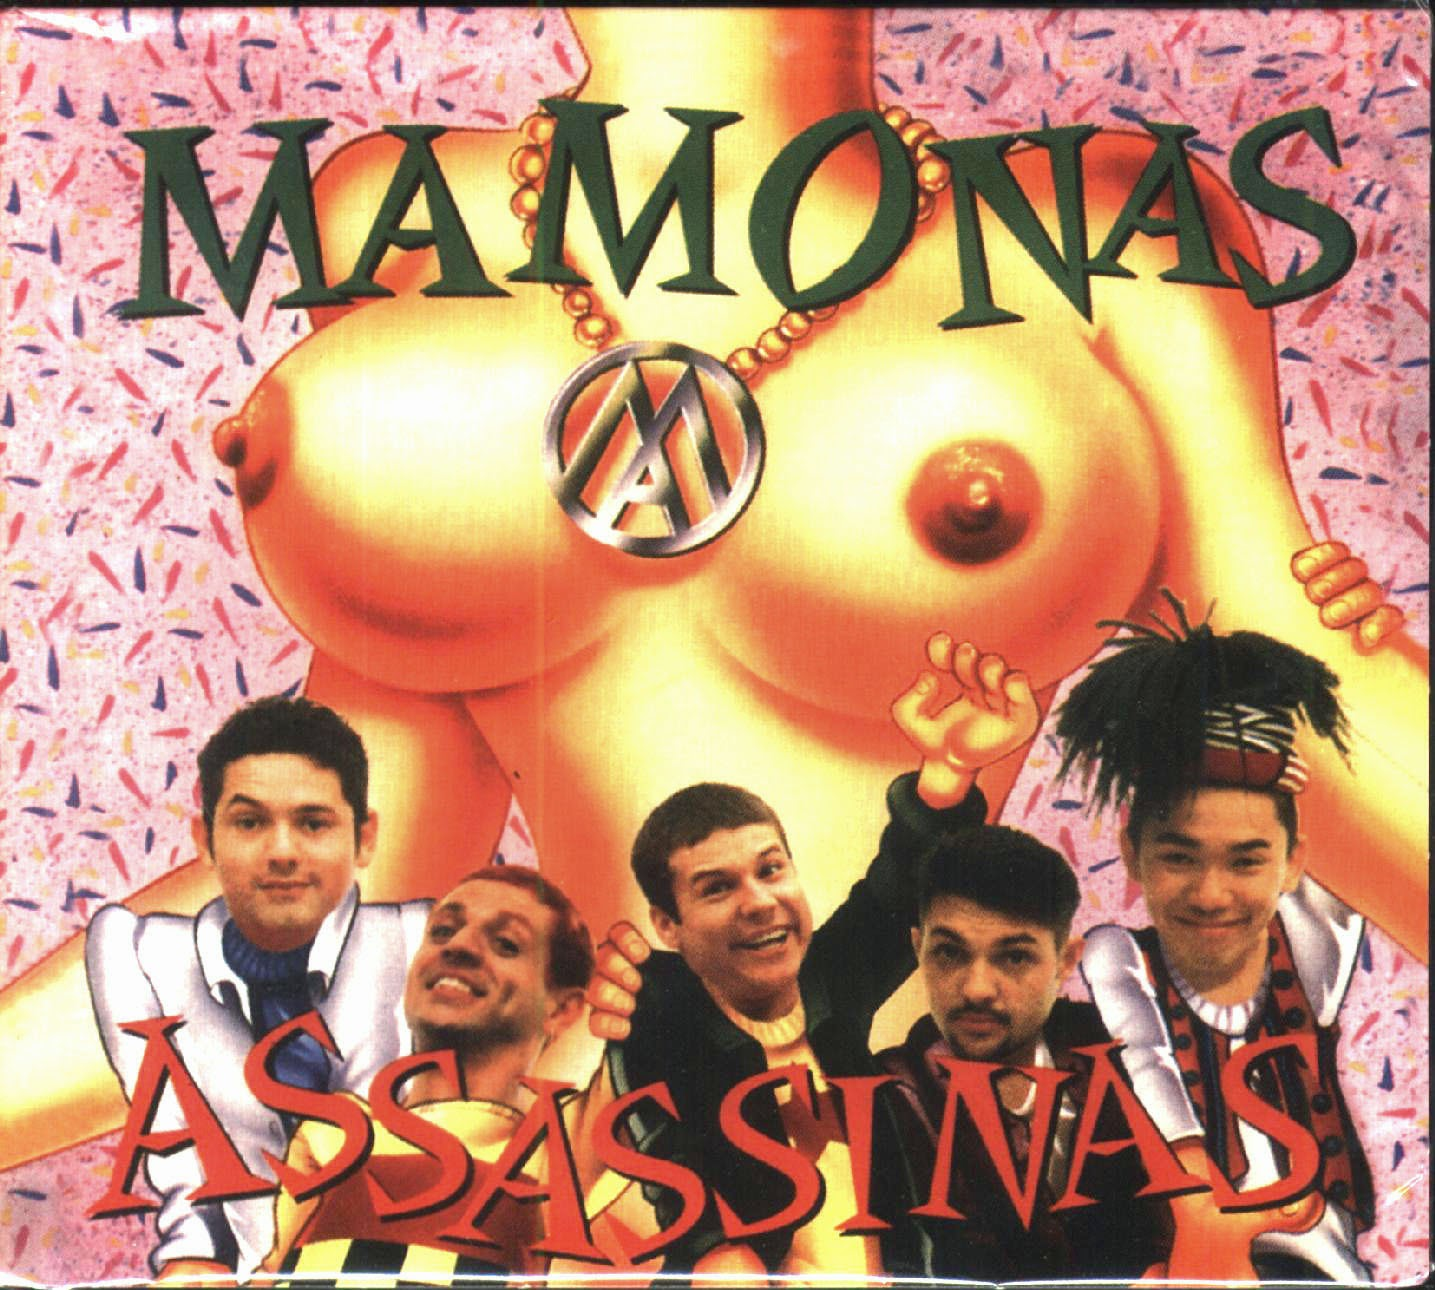 DOWNLOAD MAMONAS GRÁTIS DO ASSASSINAS CD